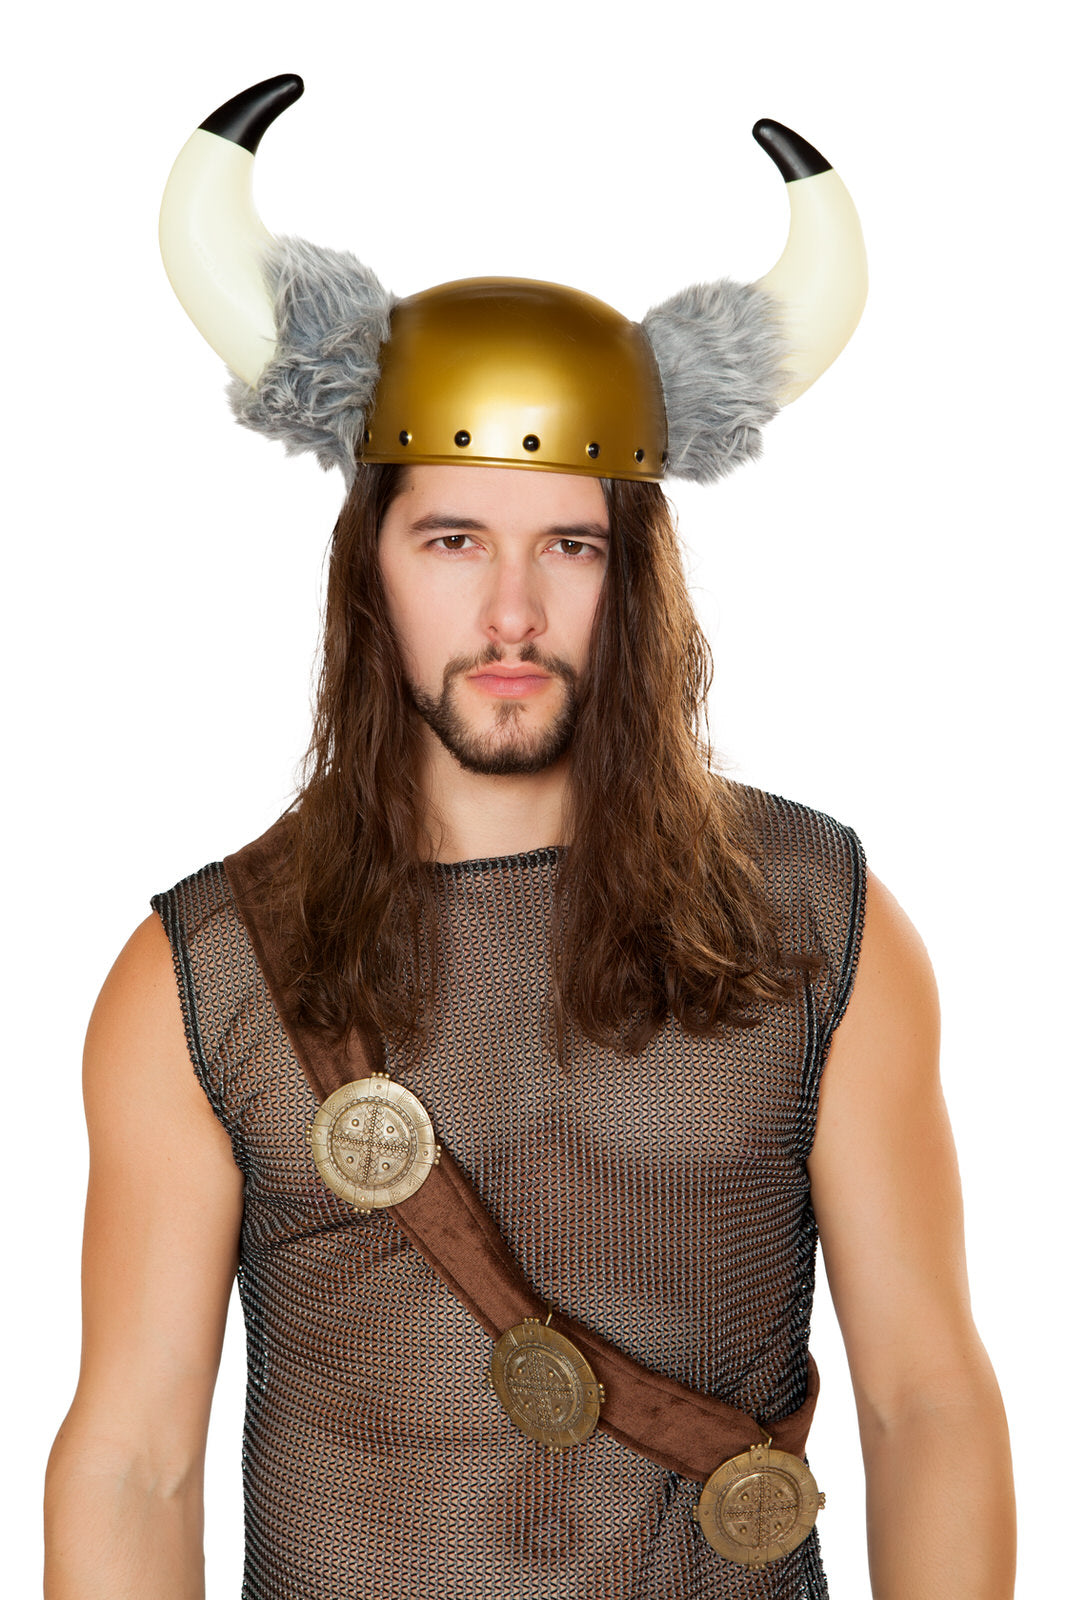 Viking Hat with Faux Fur Detail ${description} | Roma Costume and Roma Confidential wholesale manufacturer of Women Apparel bulk world wide wholesale and world wide drop ship services for Adult Halloween Costumes, Sexy and Elegant Lingerie, Rave Clothing, Club wear, and Christmas Costumes. Costumes,Accessories, Roma Costume, Inc., Roma Costume, Roma Confidential, Wholesale clothing, drop ship, drop ship service, Wholesale Lingerie, Wholesale Adult Halloween Costumes, Rave Clothing, EDM Clothing, Festival Wear, Christmas Costumes, Clubwear, Club wear.